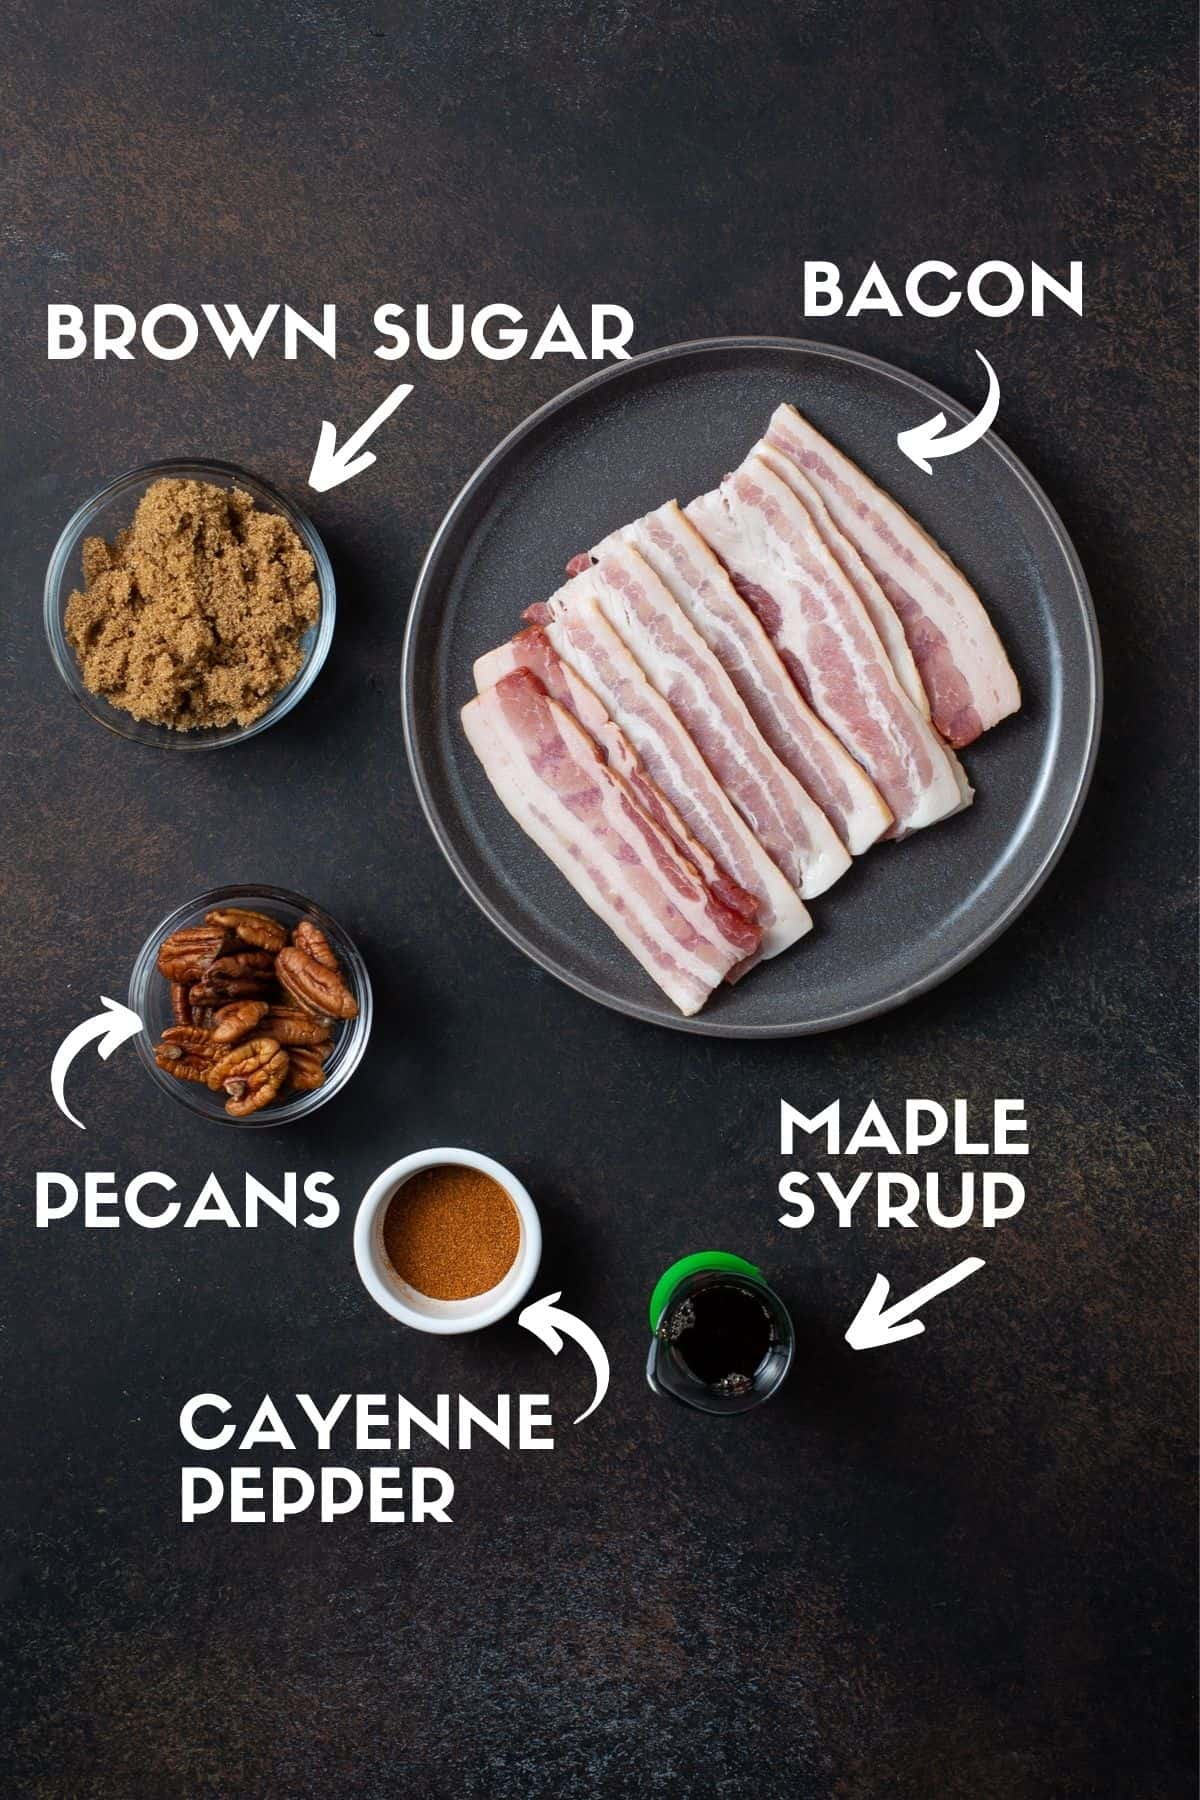 bacon, pecans, brown sugar, maple syrup and cayenne pepper on black board.